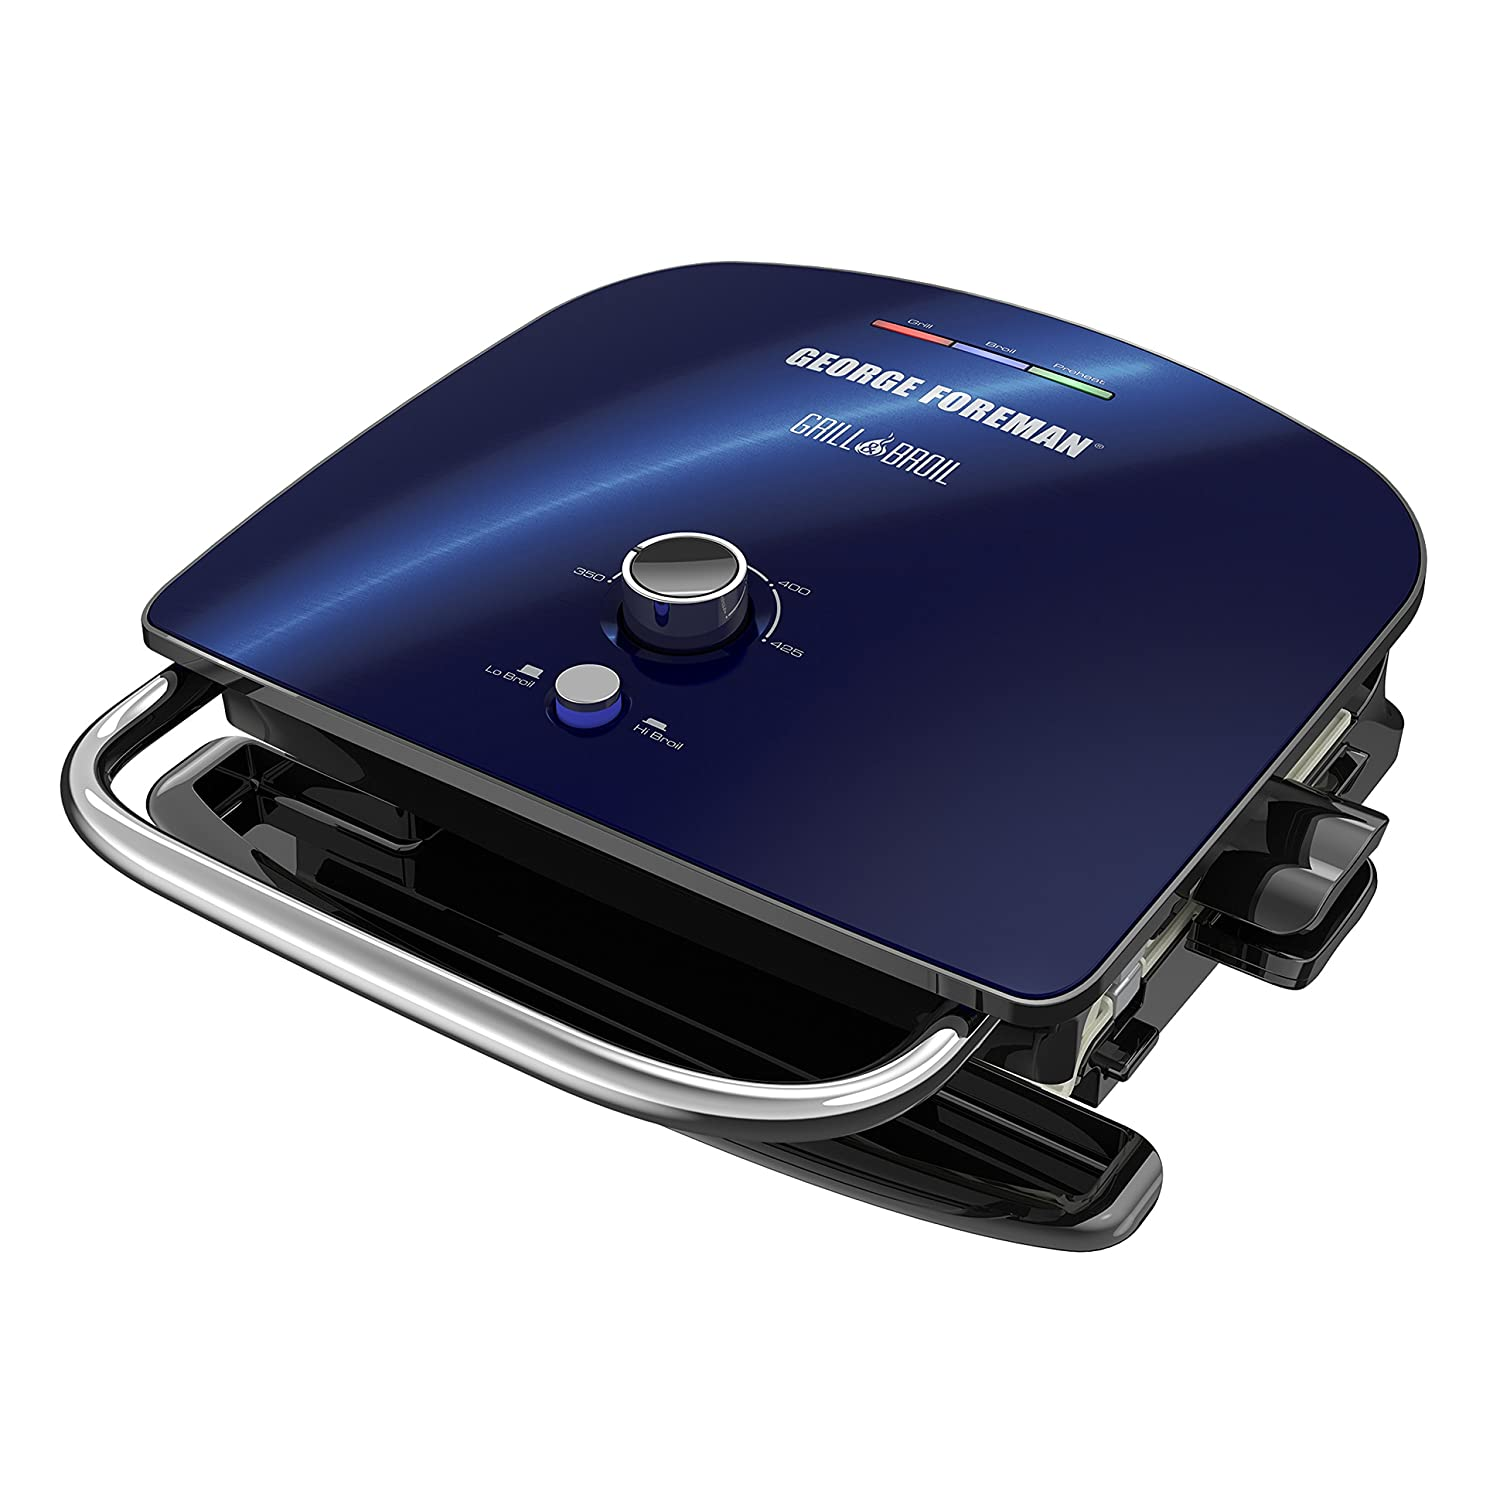 George foreman grill model grp99 manual.